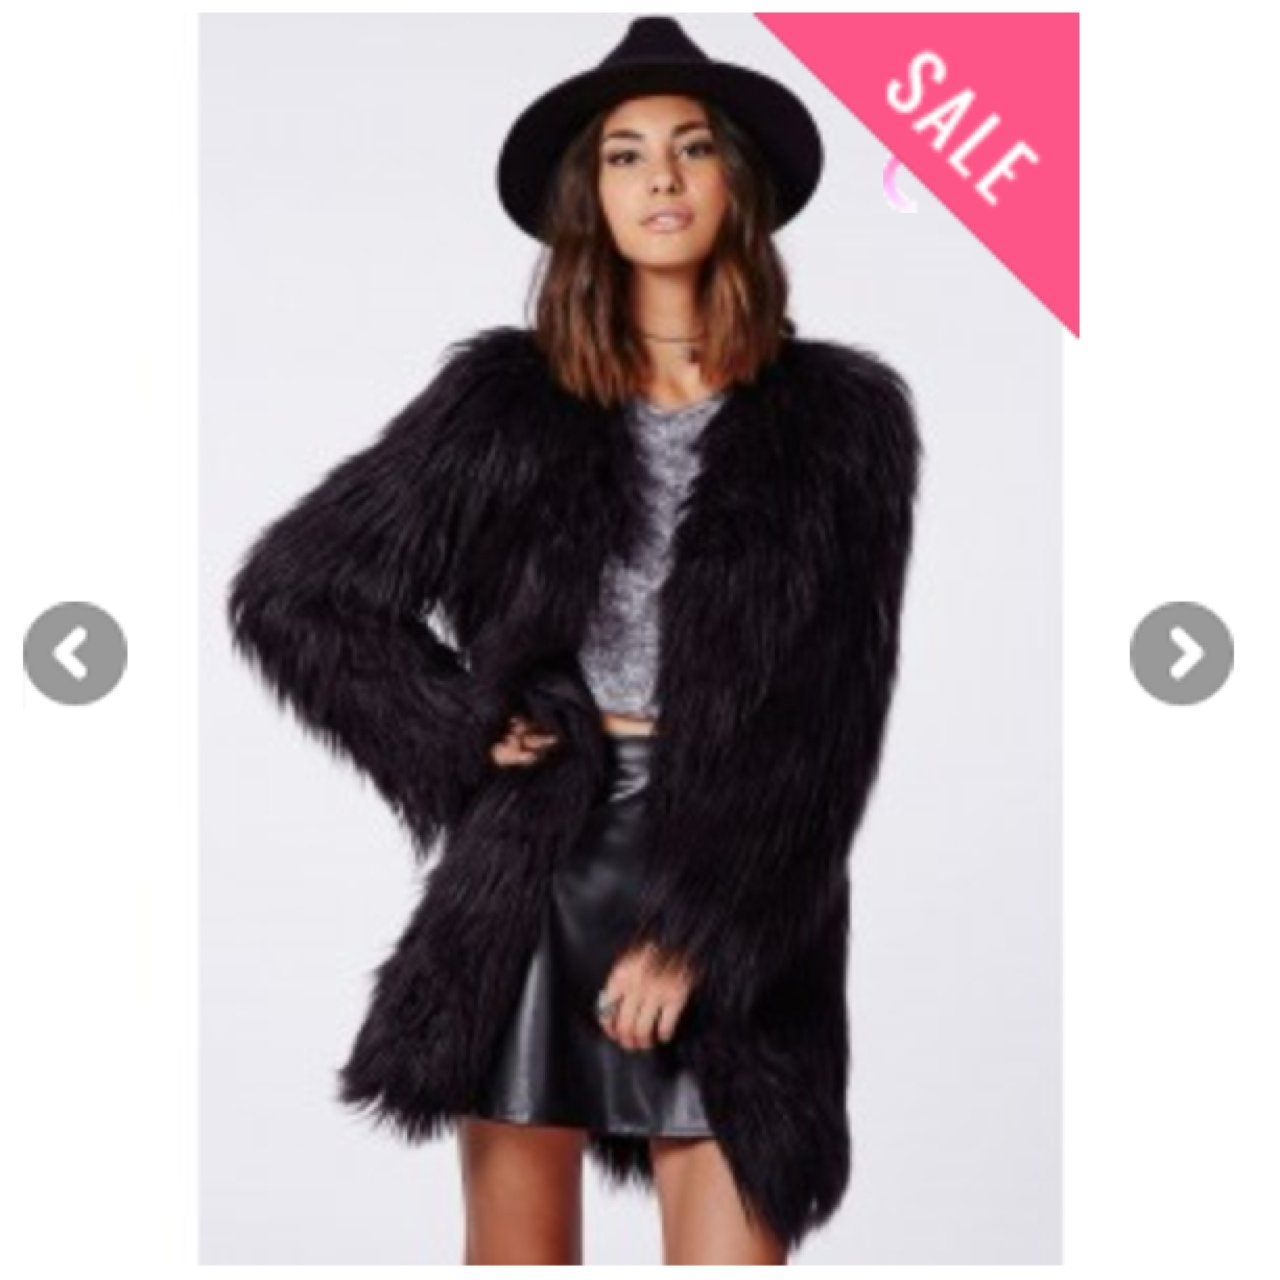 f7fcb34d246 MISSGUIDED CLOE SHAGGY FAUX FUR COAT BLACK - NEVER BEEN WORN - Depop